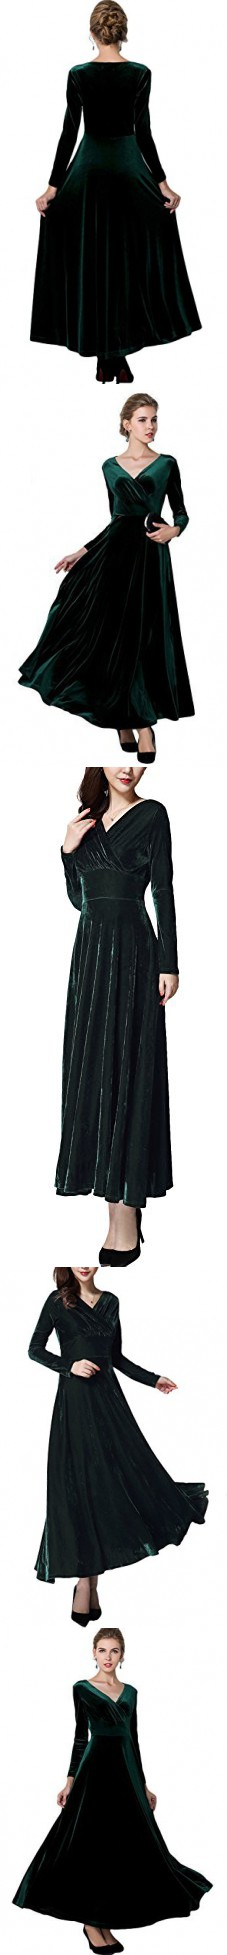 fba3d8d765e Urban CoCo Women long sleeve V-neck Velvet Stretchy Long Dress (X-Large